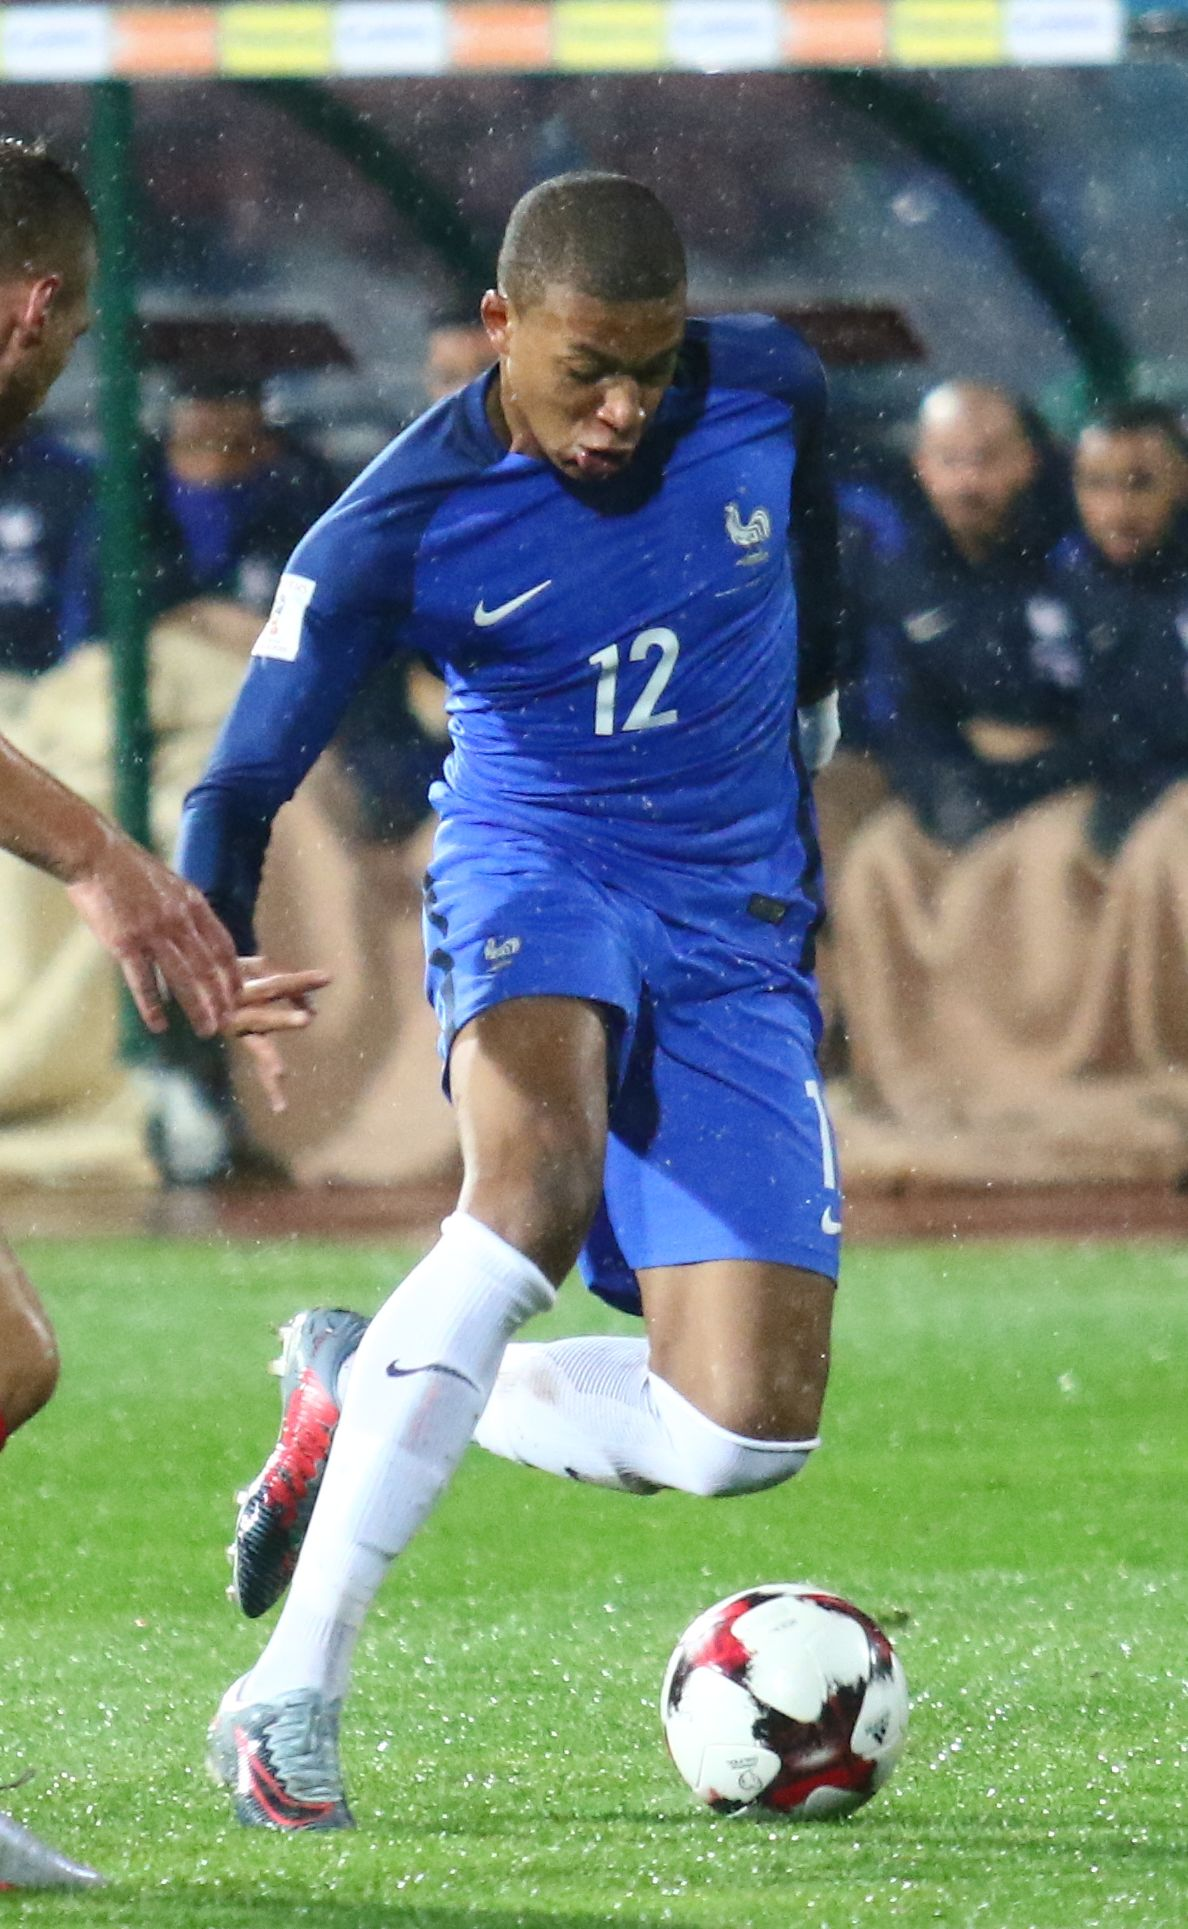 kylian mbappe - photo #38